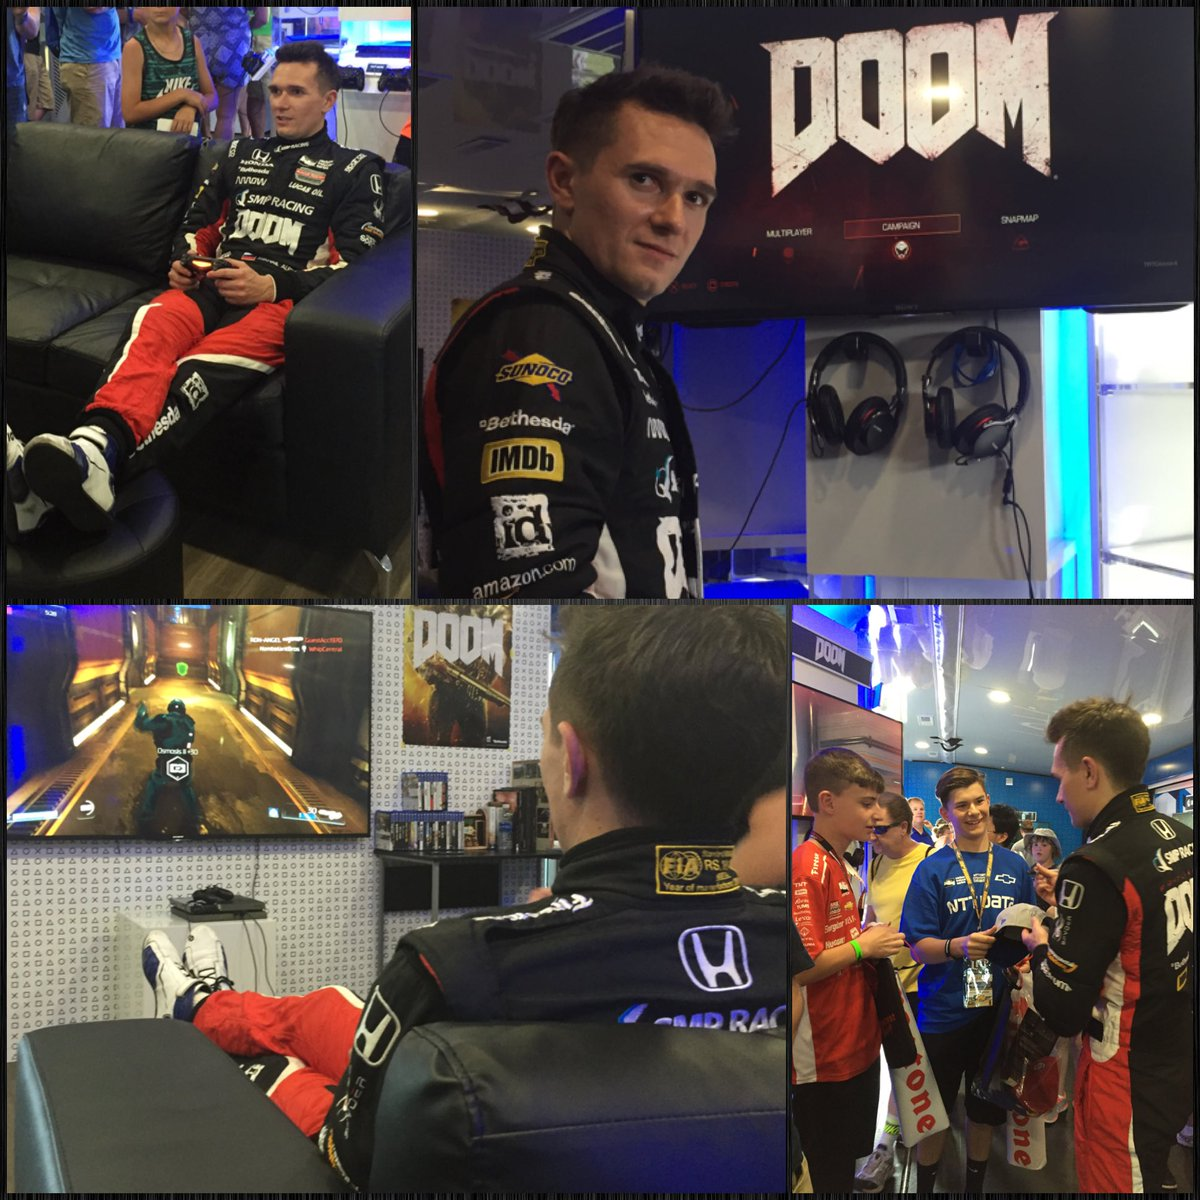 A few lucky fans just got to play @DOOM with @mikhailaleshin in the @playstation #PS4 trailer at @IMS! https://t.co/CqW5bVKhFO